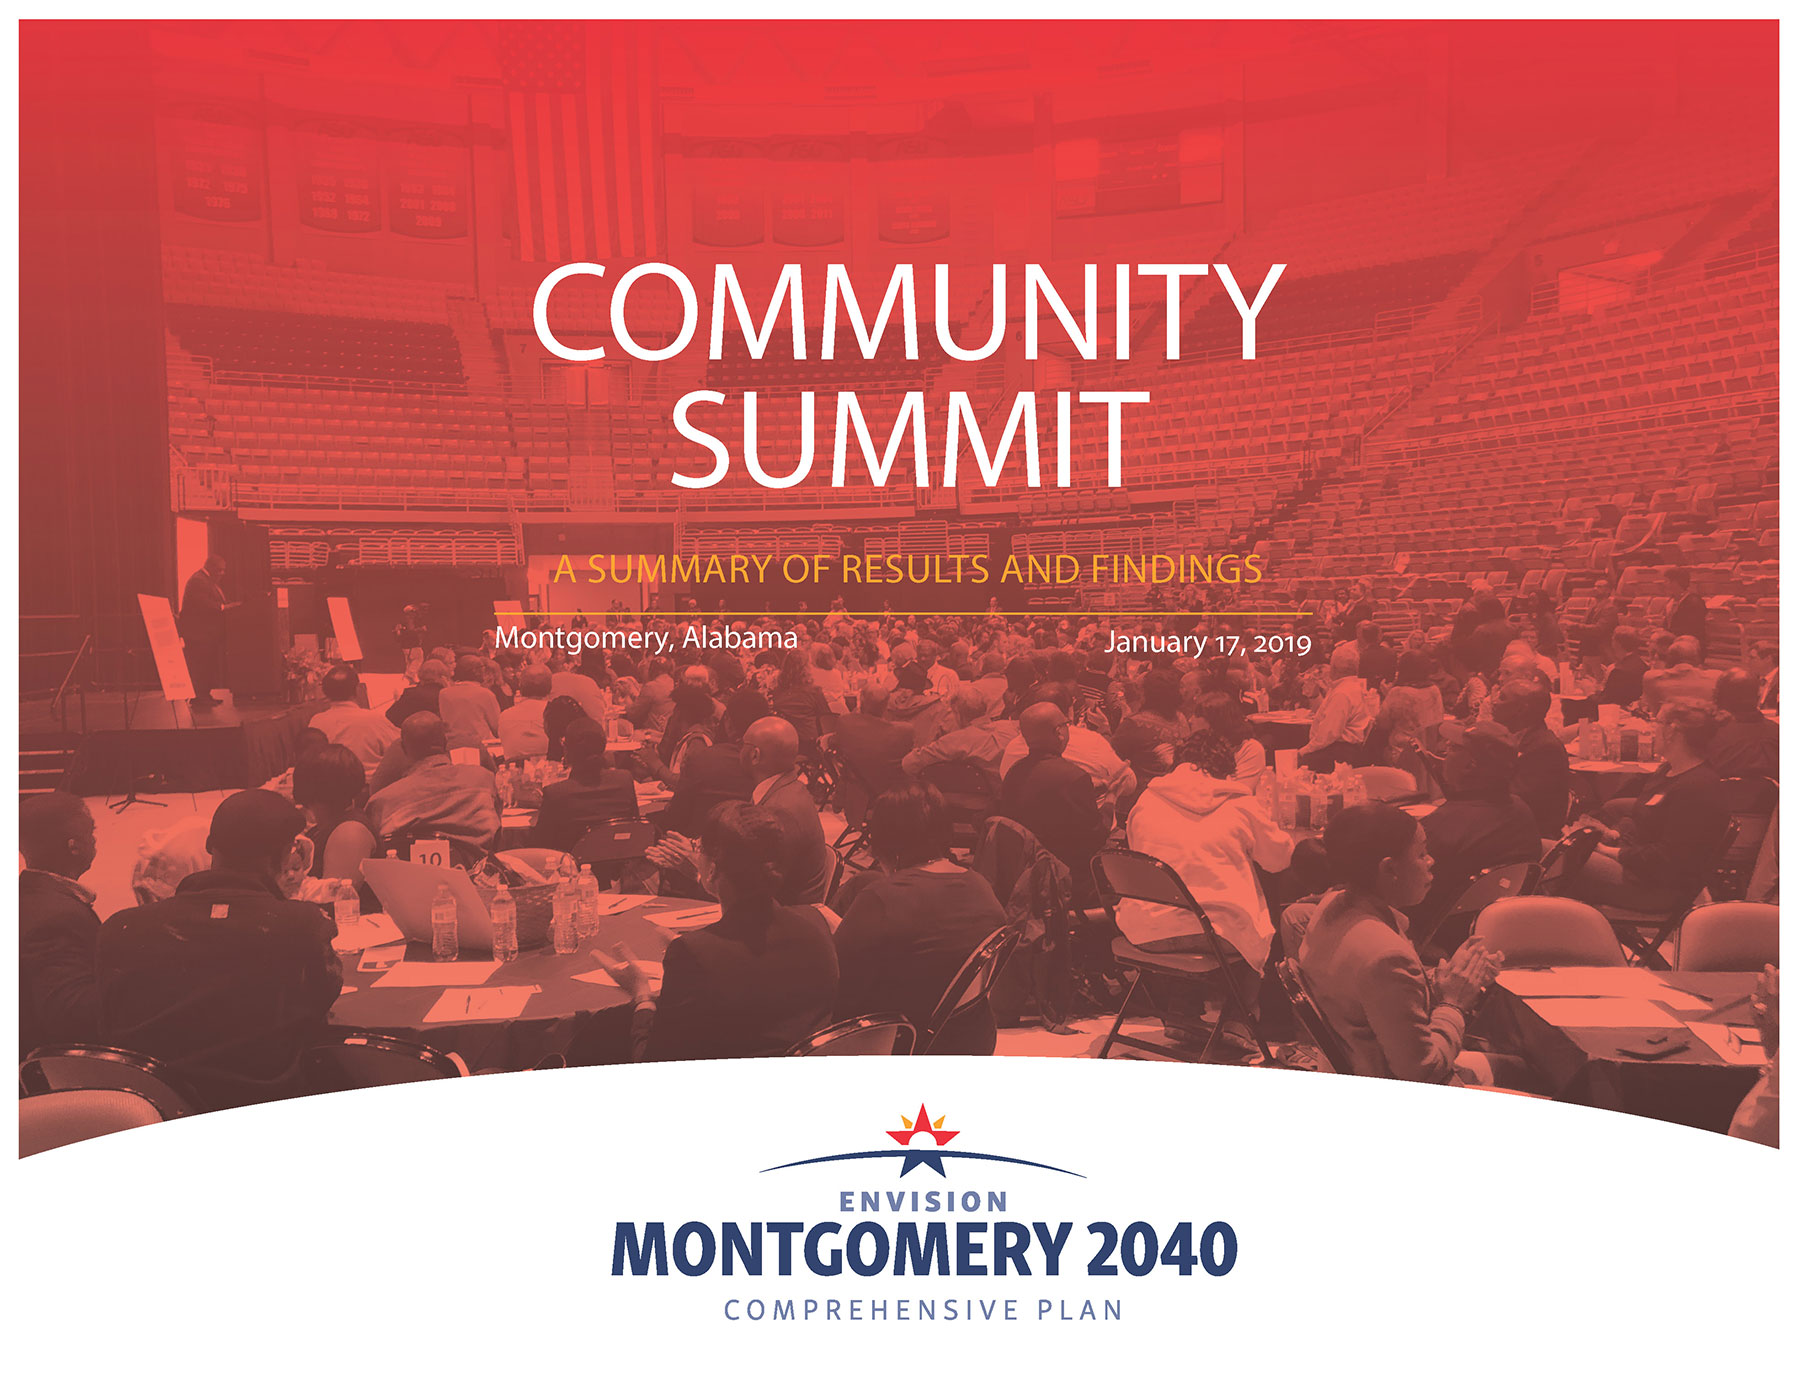 Check out the Results of the Community Summit!